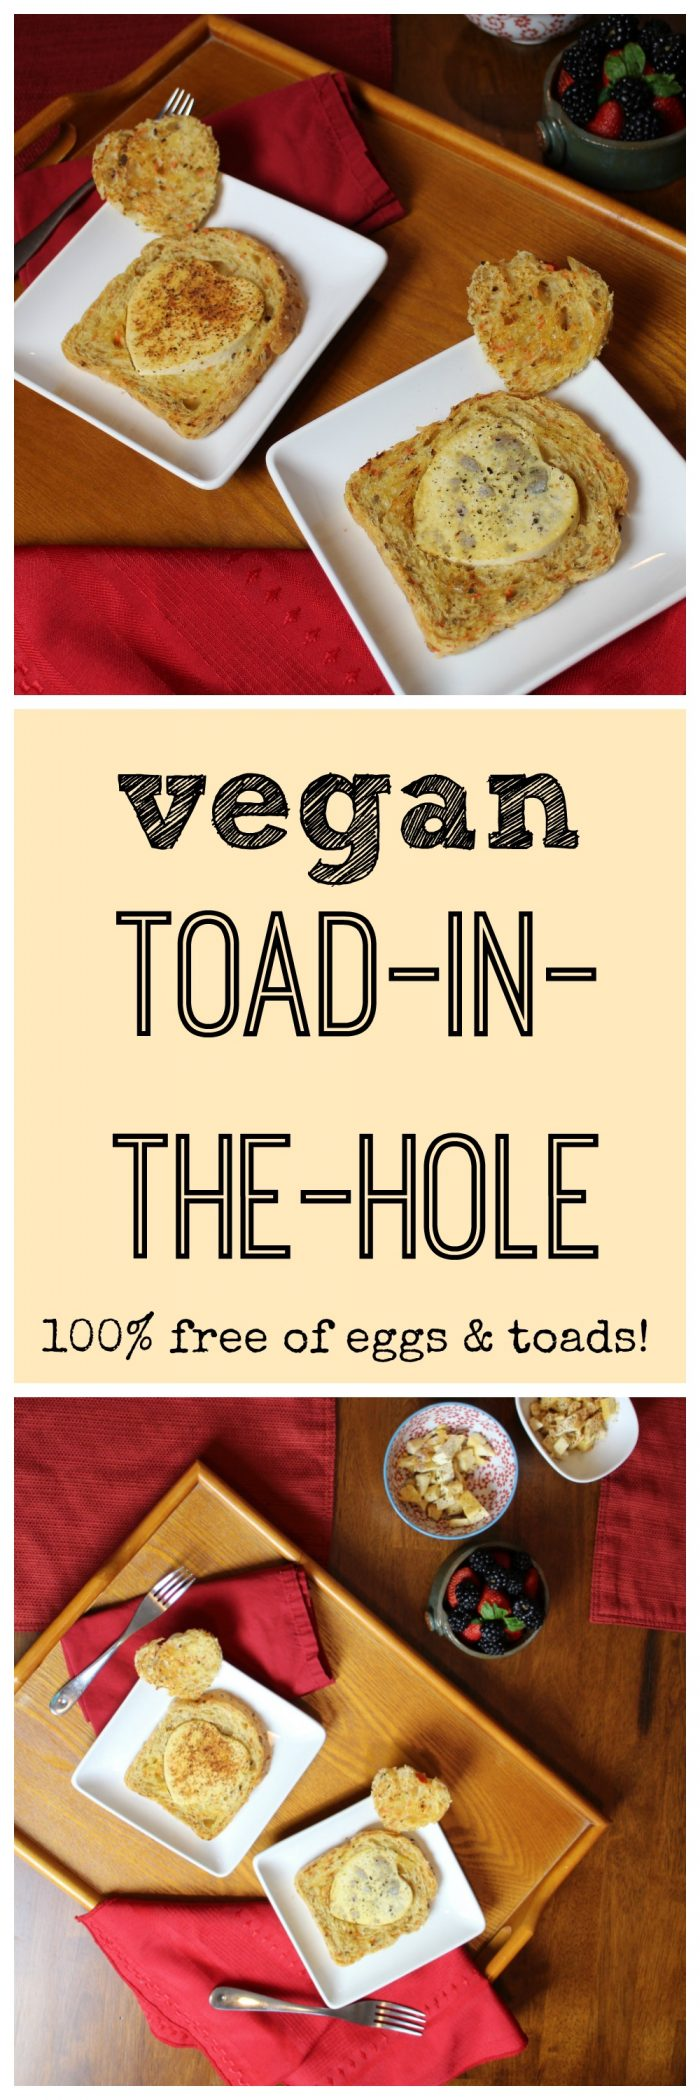 A vegan version of toad-in-the-hole. No eggs or toads involved! It's a fun & tasty breakfast. | cadryskitchen.com